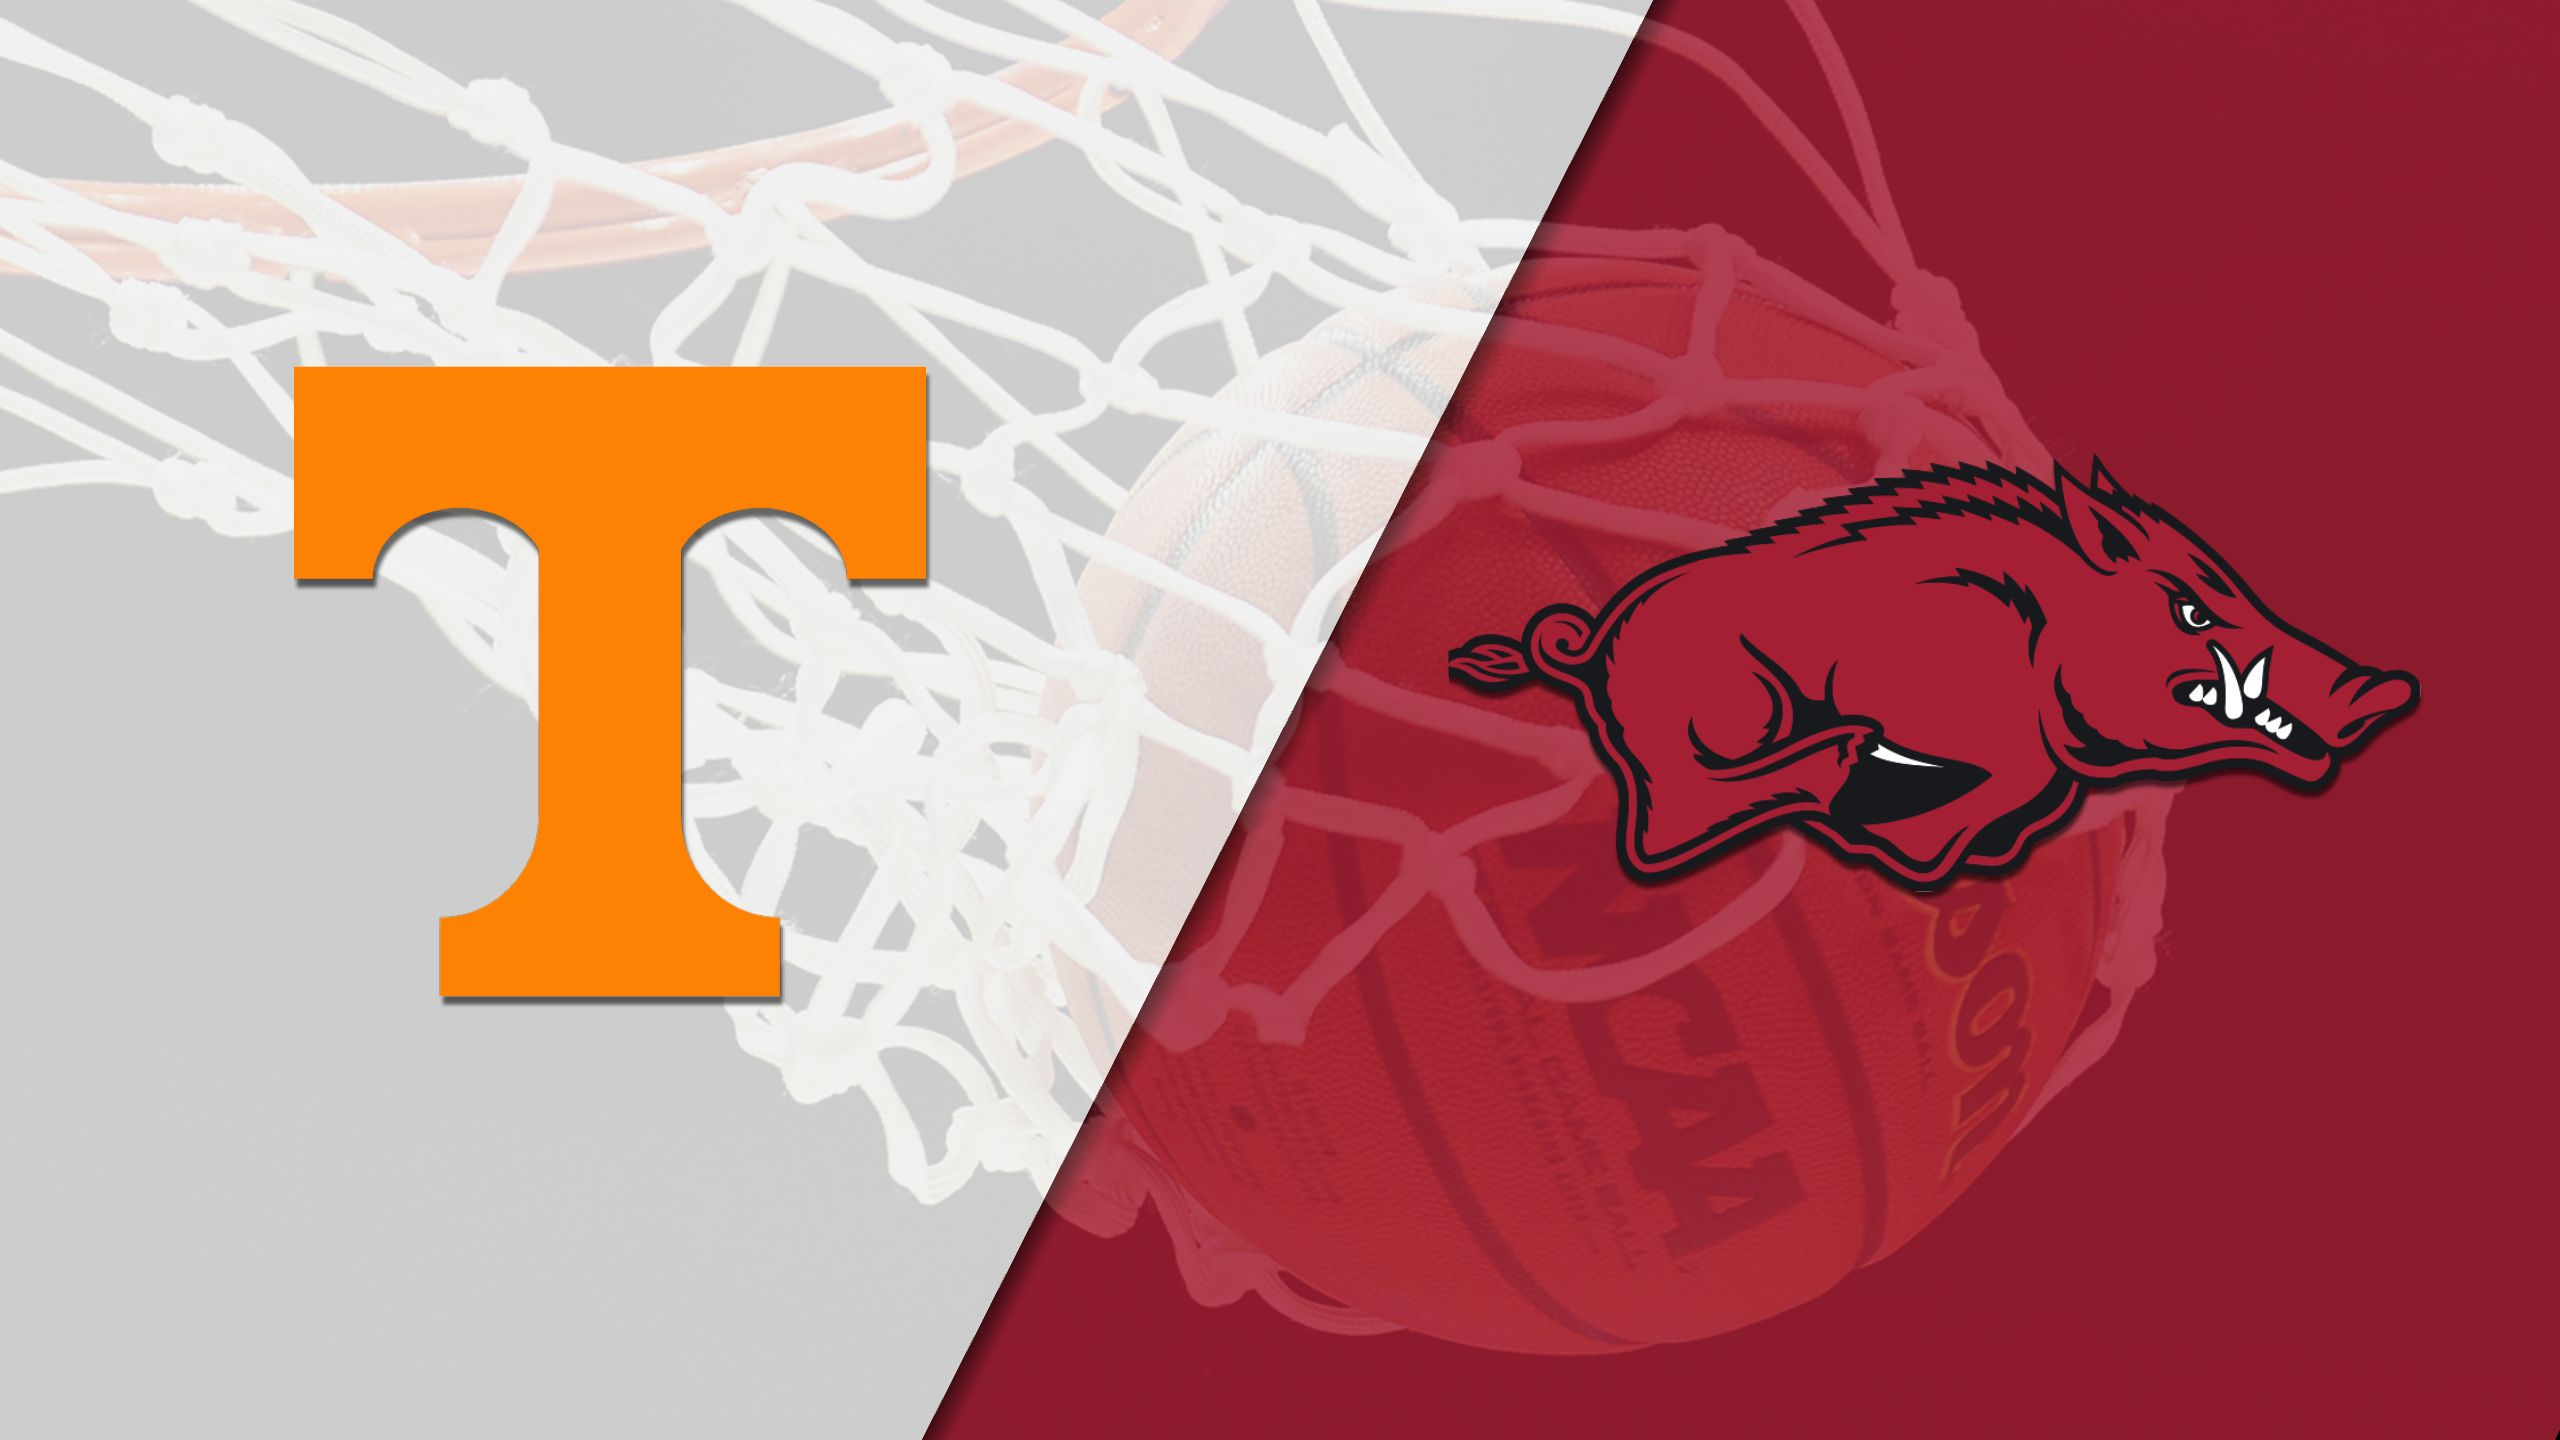 #19 Tennessee vs. Arkansas (M Basketball)